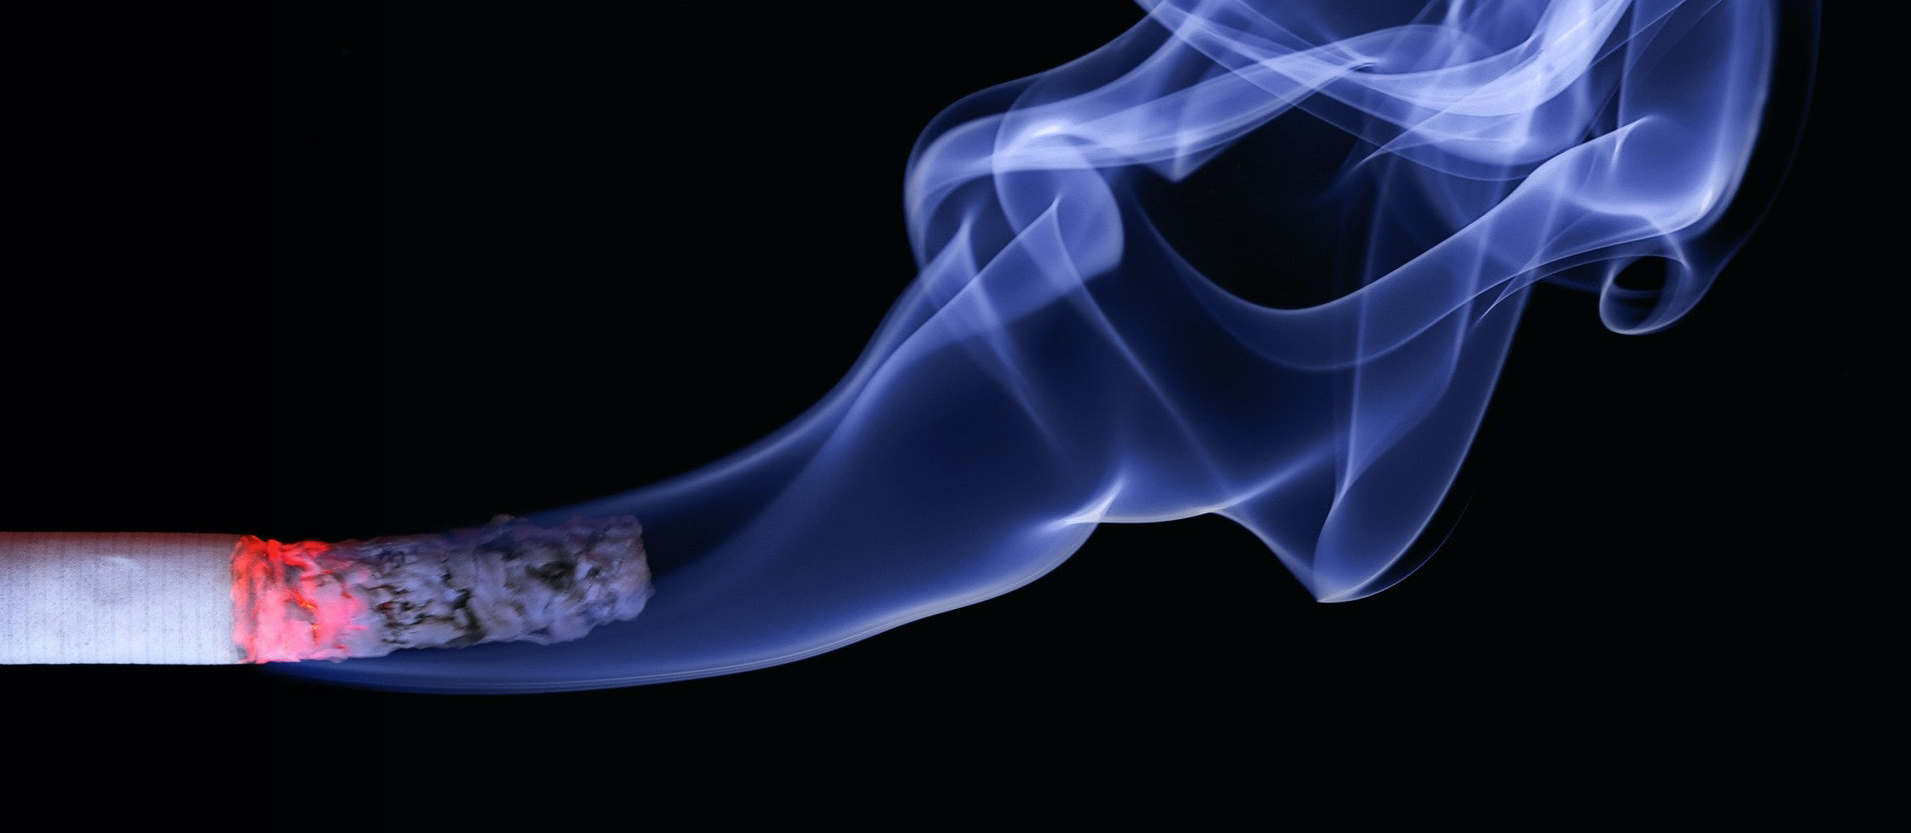 Cigarette with smoke on black background